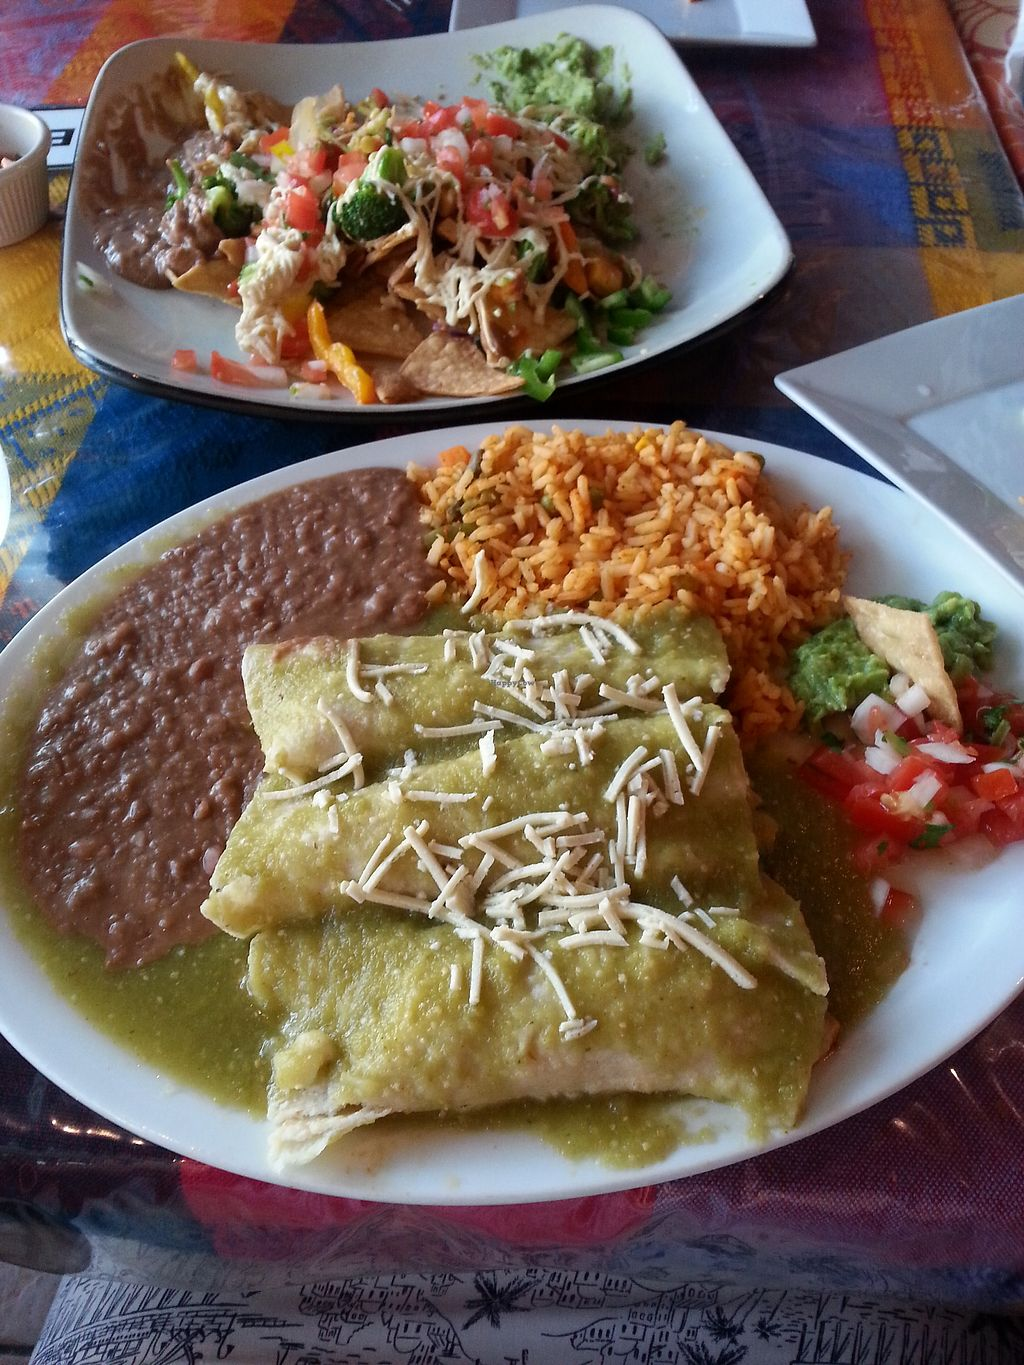 "Photo of Cantina Vallarta  by <a href=""/members/profile/LolaMeow"">LolaMeow</a> <br/>Enchiladas with salsa verde <br/> July 2, 2017  - <a href='/contact/abuse/image/71925/276045'>Report</a>"